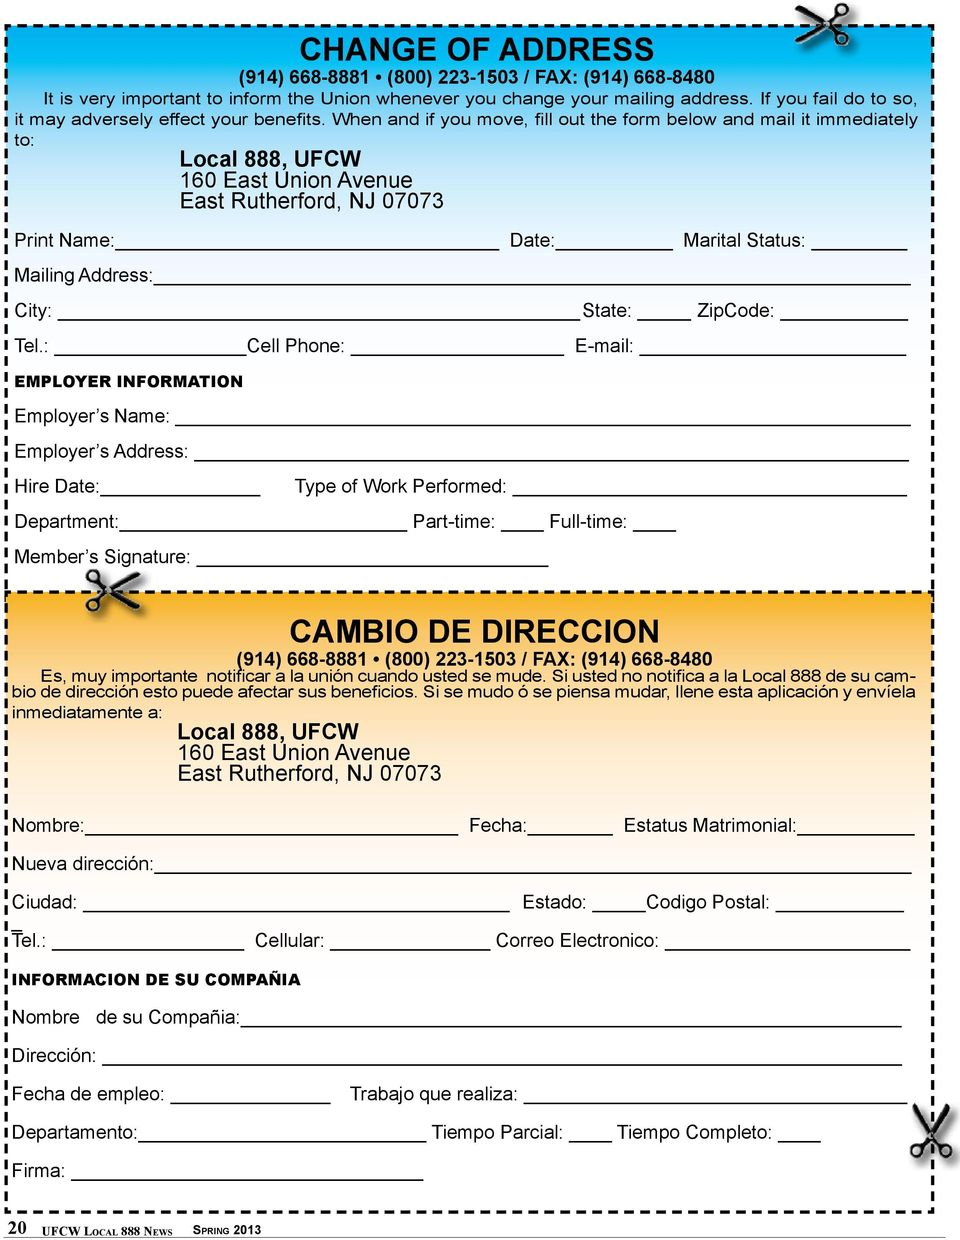 When and if you move, fill out the form below and mail it immediately to: Local 888, UFCW 160 East Union Avenue East Rutherford, NJ 07073 Print Name: Date: Marital Status: Mailing Address: City: